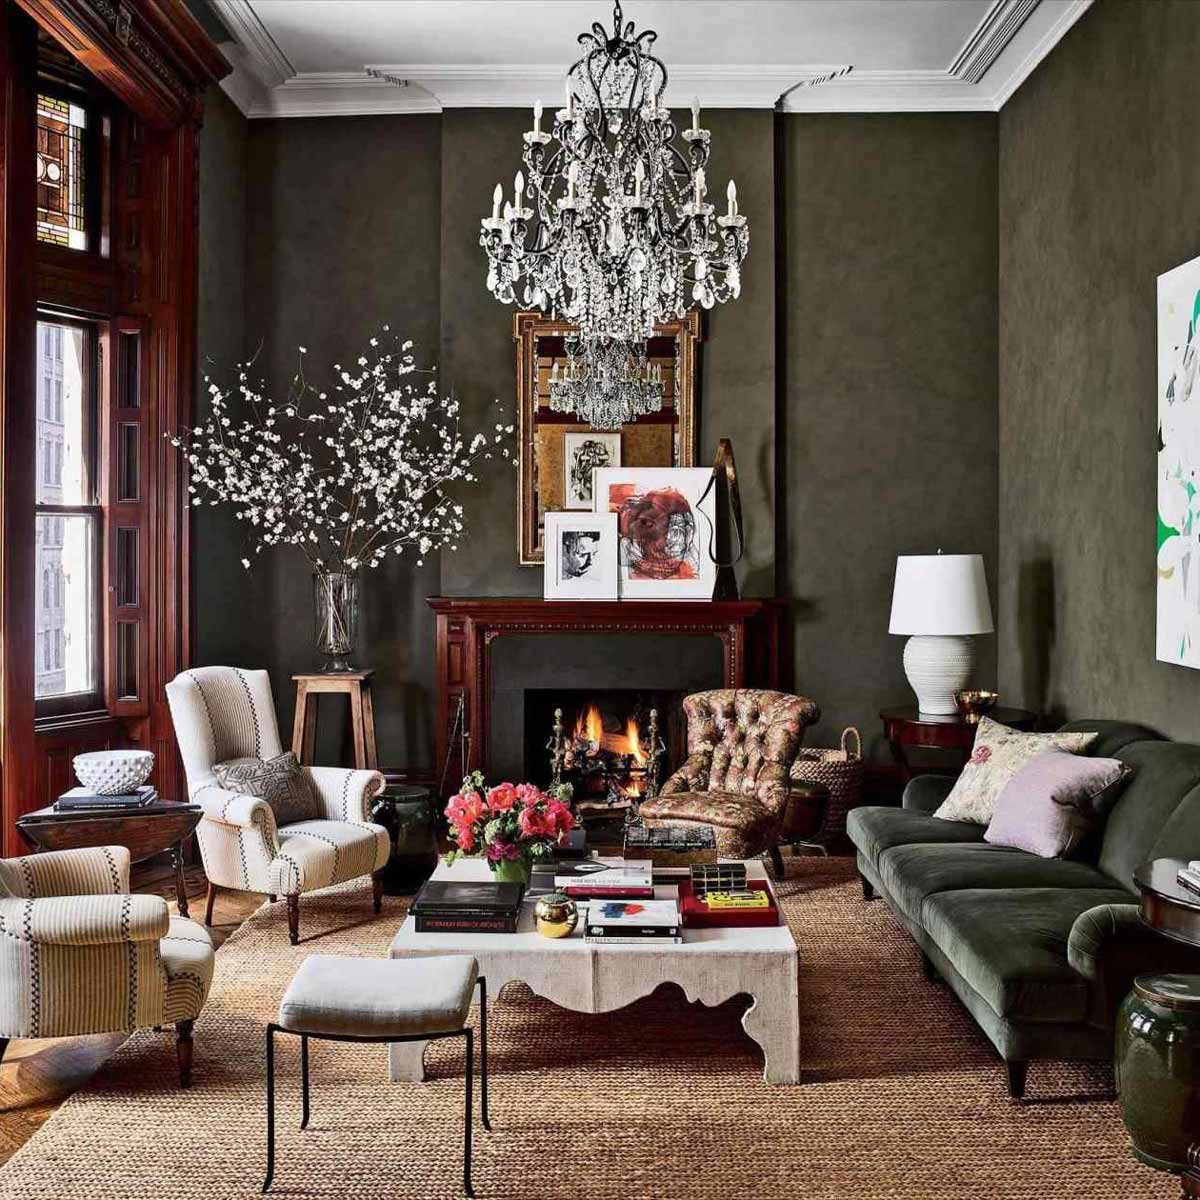 Family Apartment: If You Decorated Your Home According To Your Zodiac Sign